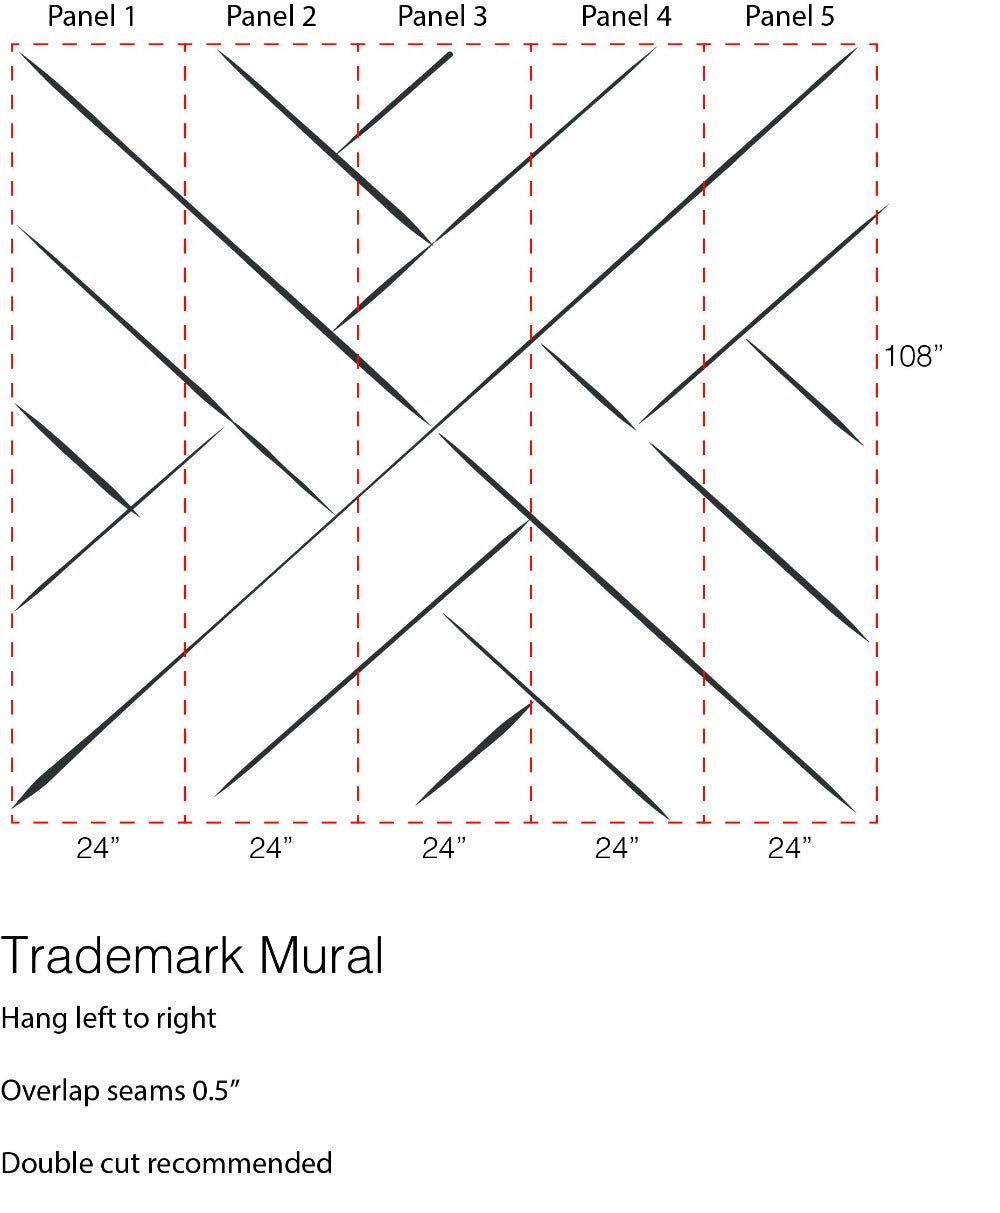 Trademark - The Mural Wallpaper - Mrs Paranjape Papers